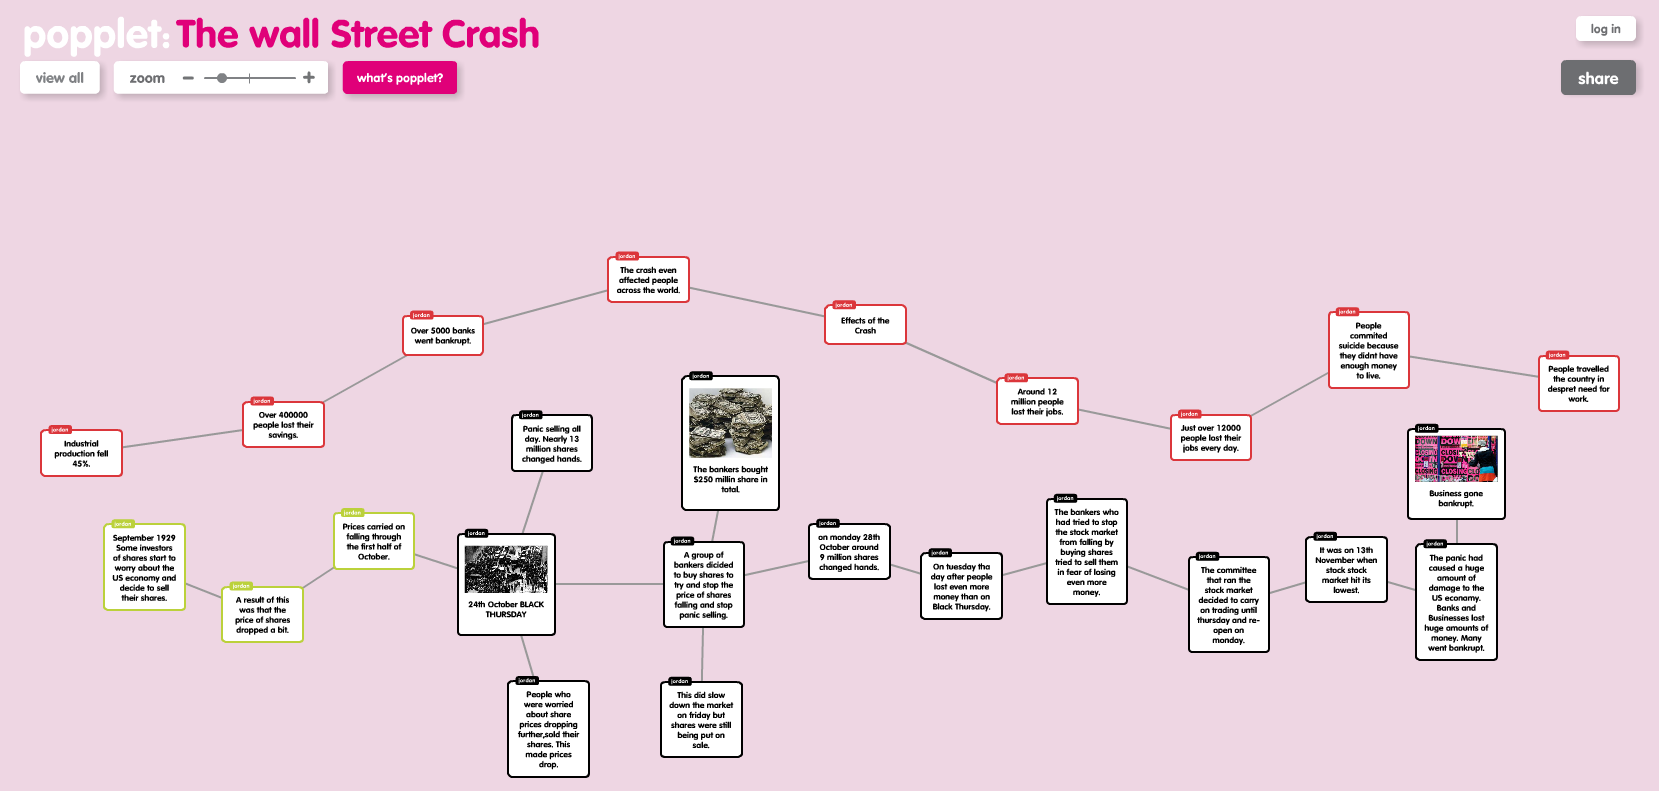 wall street crash timeline by jordan from mraotway s on wall street id=80186